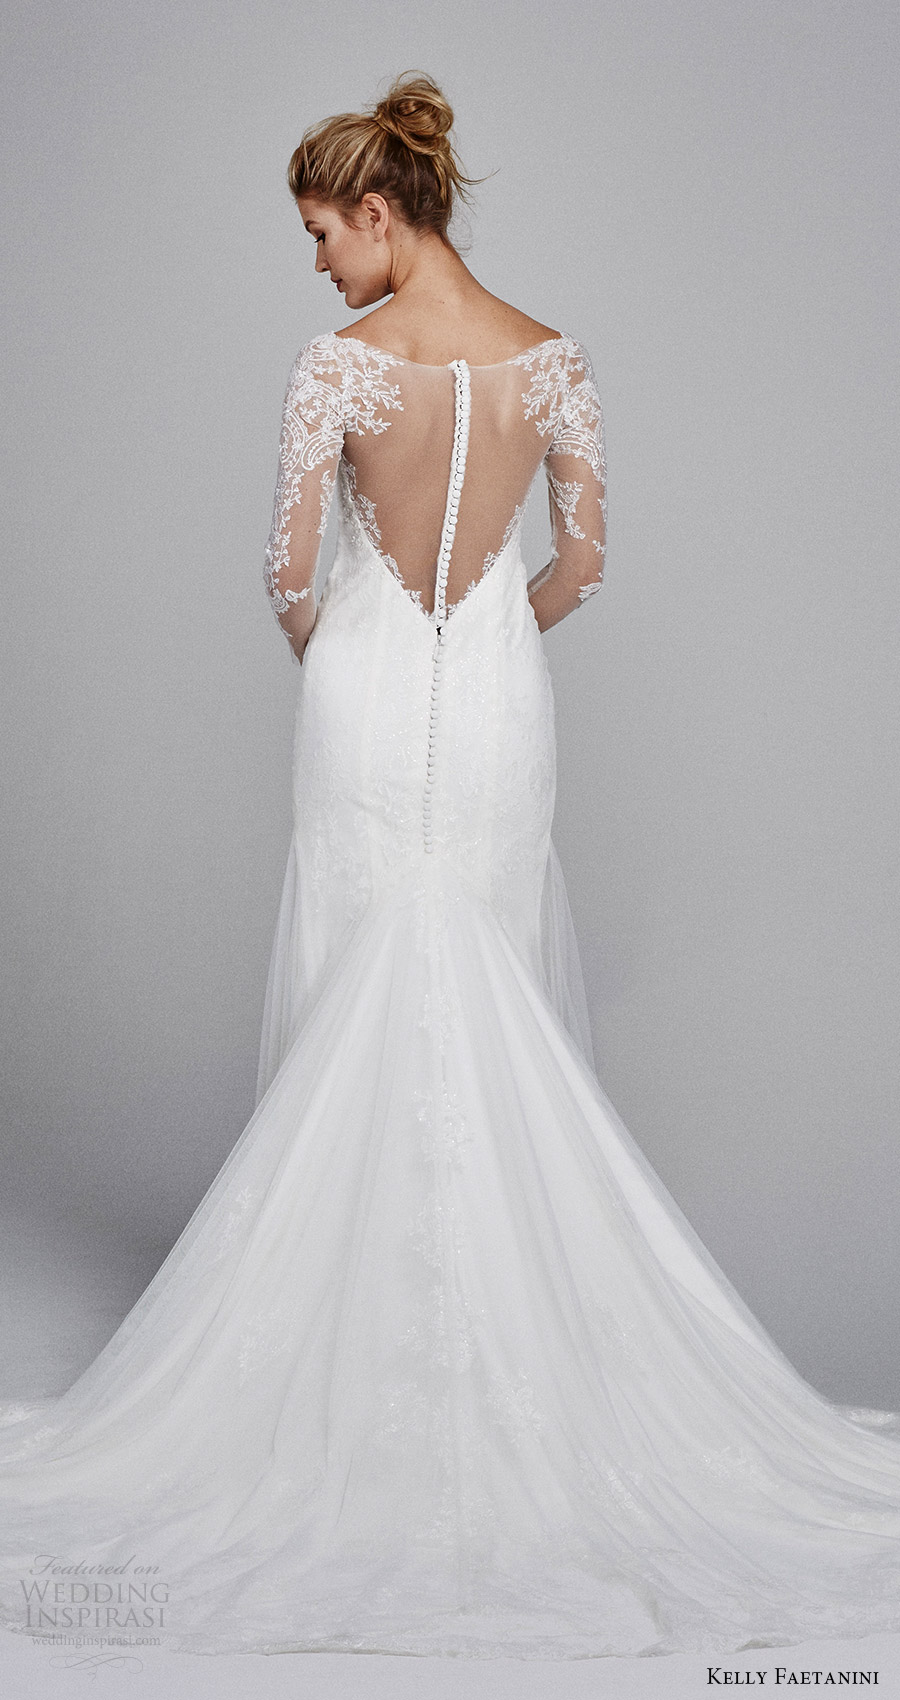 kelly faetanini bridal fall 2017 illusion long sleeves sweetheart trumpet lace wedding dress (delphine) bv illusion back train